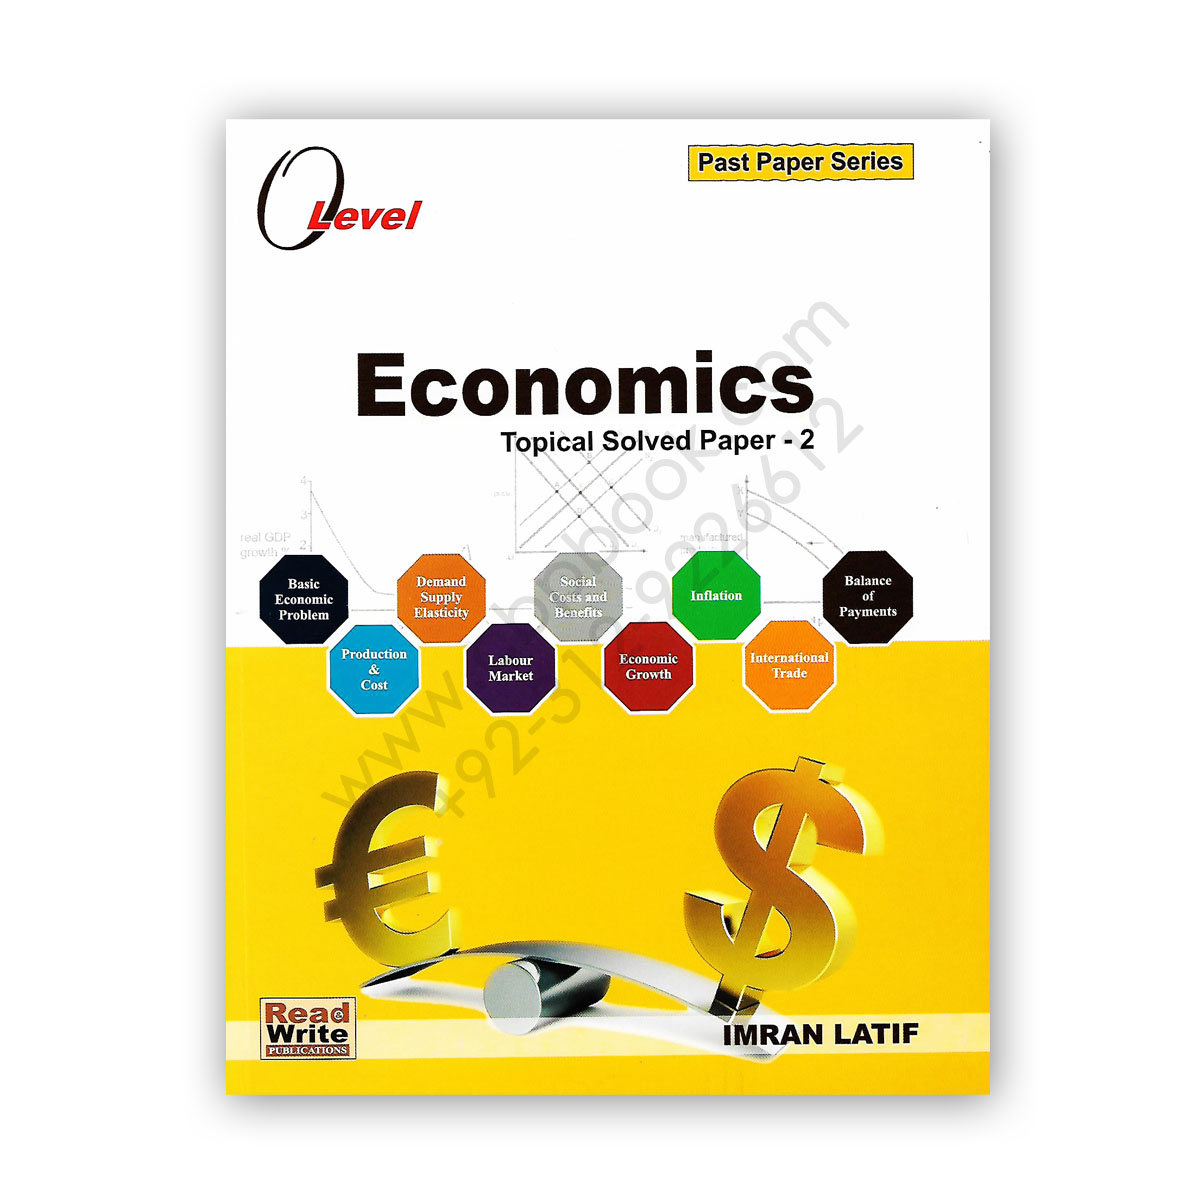 o level economics topical solved p2 by imran latif - read & write